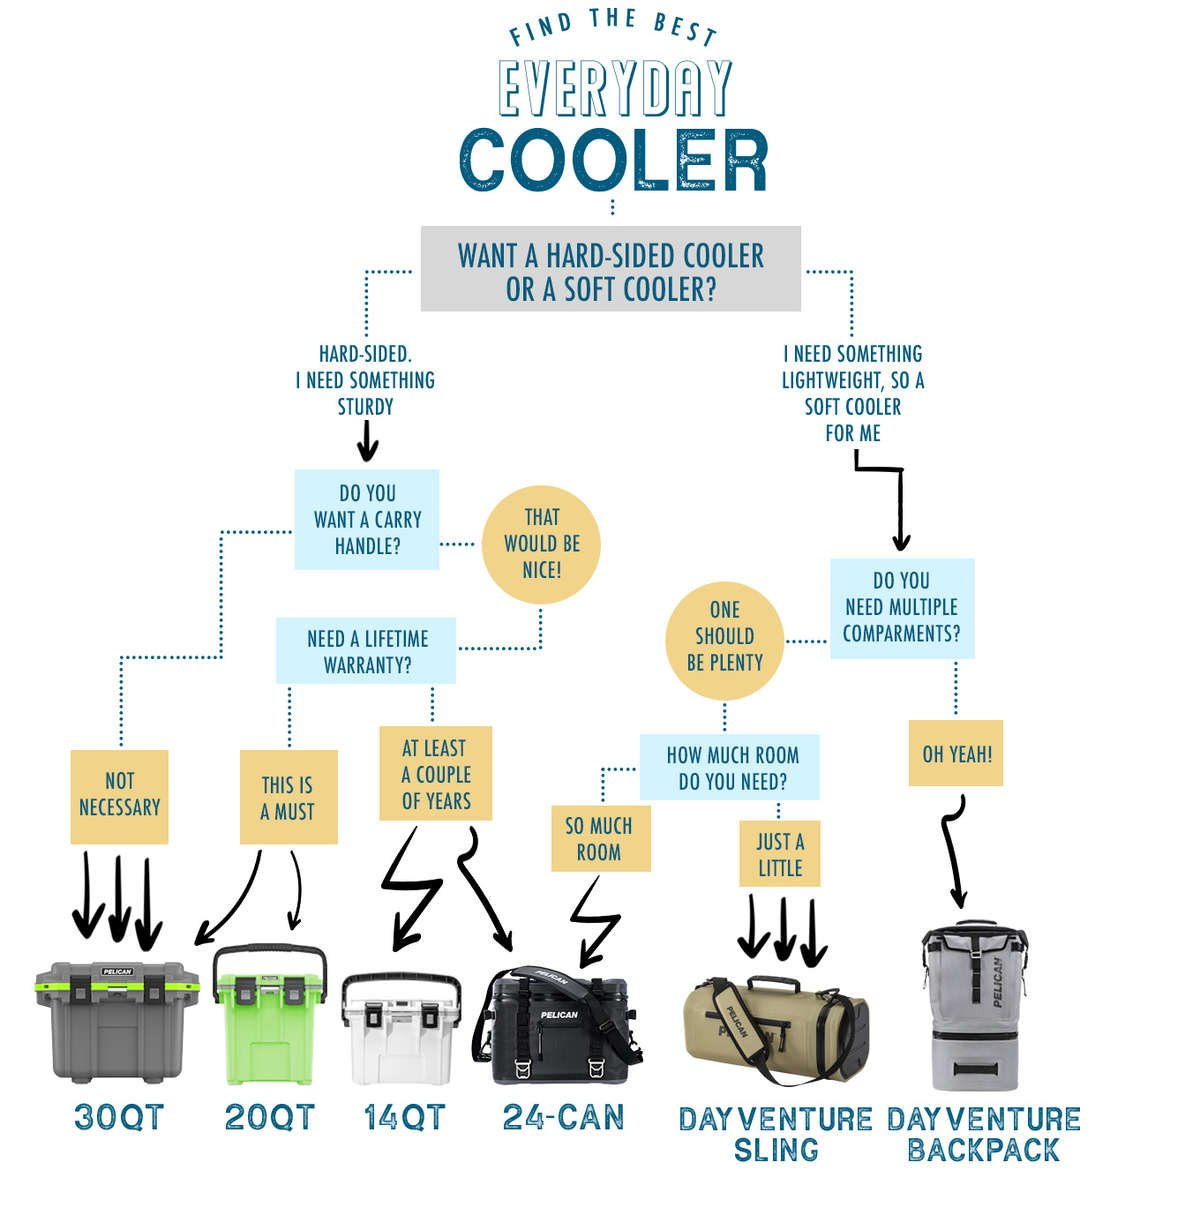 A flow chart to help determine which Pelican cooler is the best everyday cooler for you; options include the 30QT Elite Cooler, 20QT Elite Cooler, 14QT Personal Cooler & Dry Box, 24-Can Elite Soft Cooler, Dayventure Sling Soft Cooler, and Dayventure Backpack Soft Cooler.